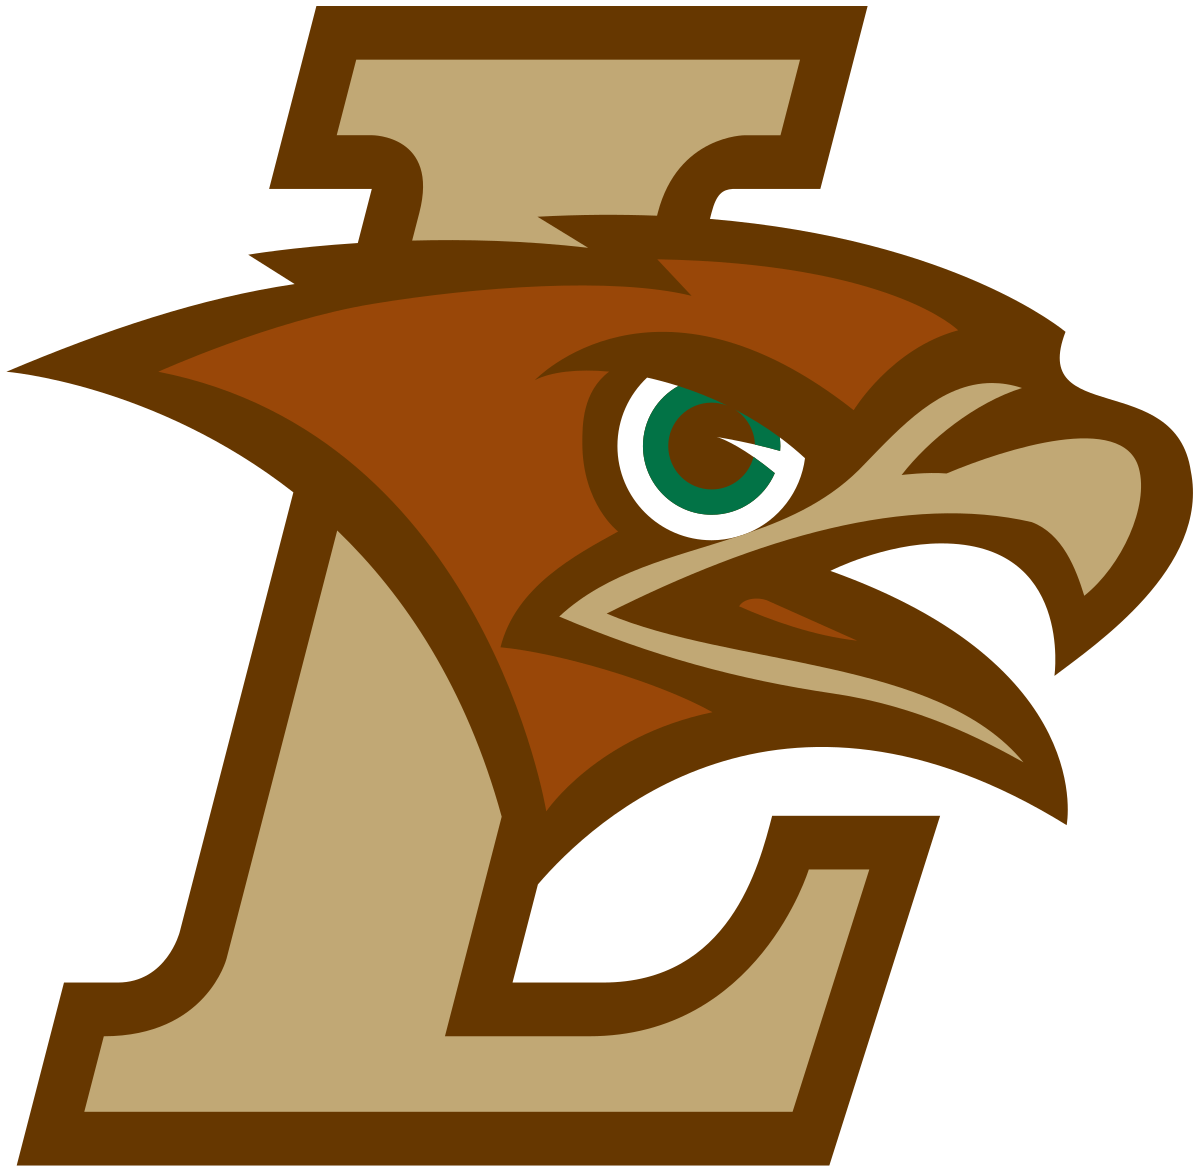 Lehigh hawks wikipedia . Pioneer clipart mountain man